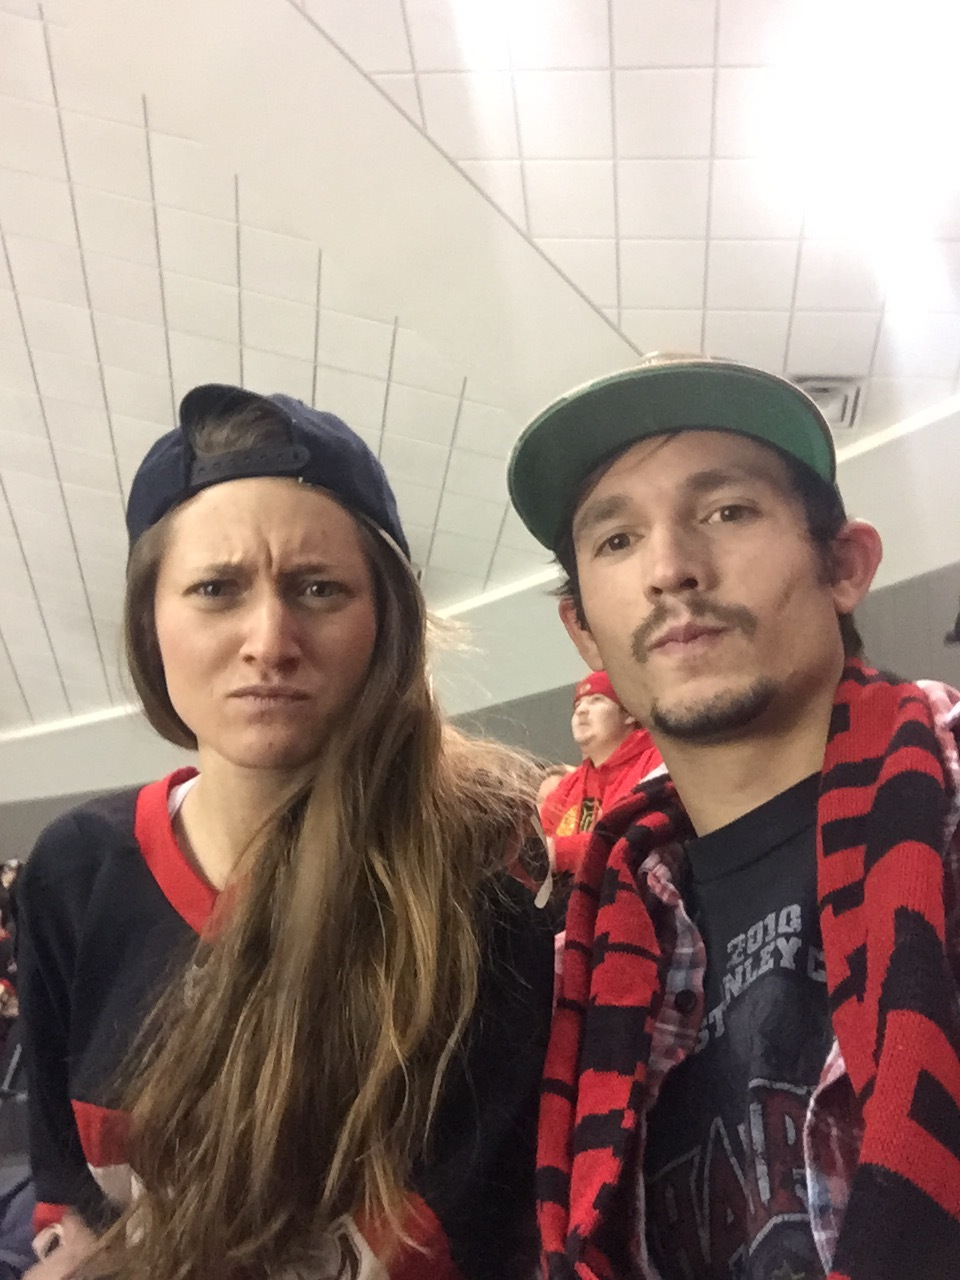 Mean Muggin' with our SnapBacks and Hawks gear!